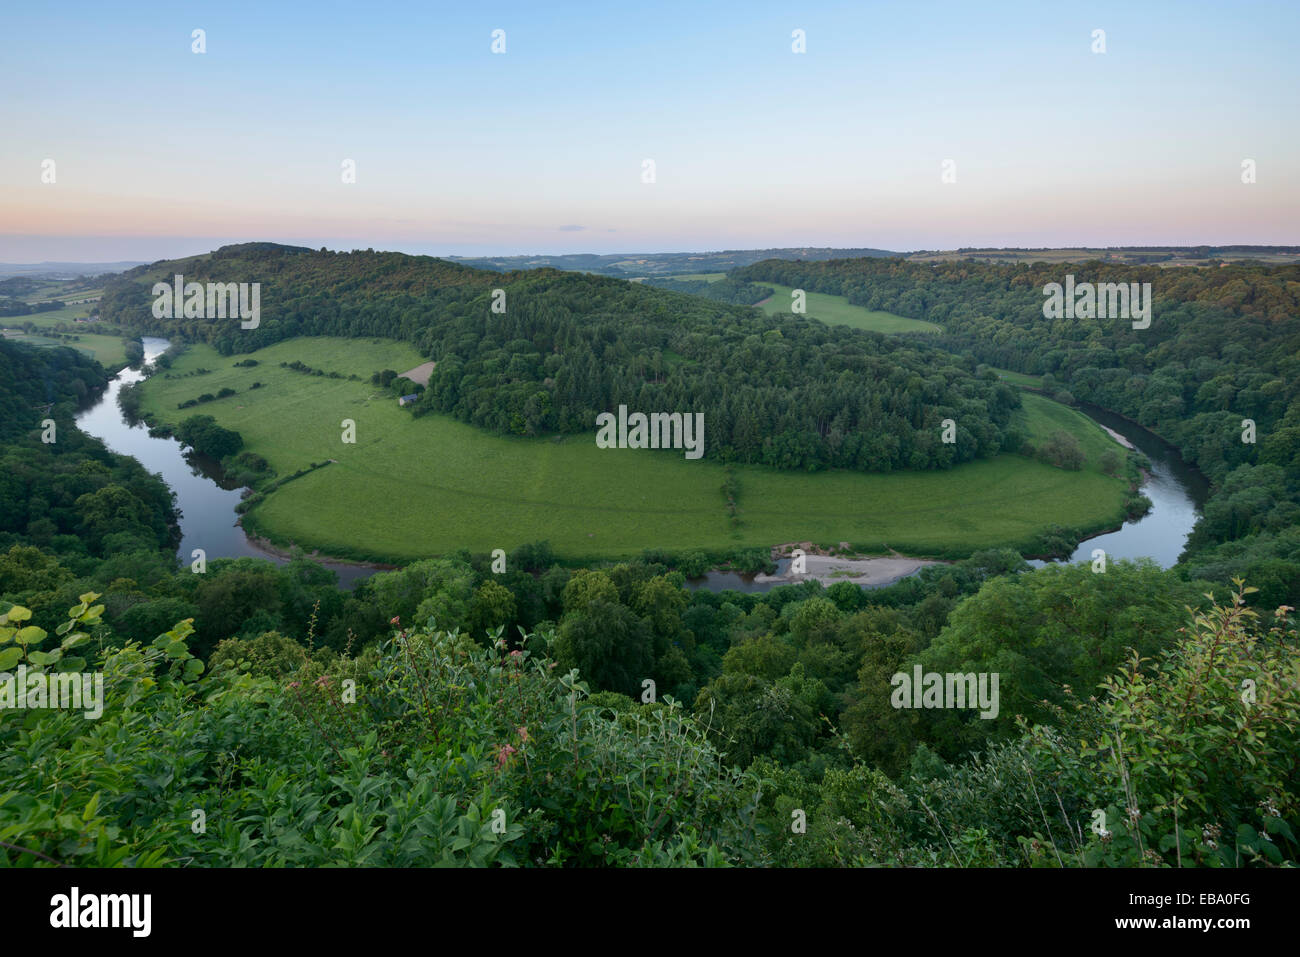 View of Symond's Yat from Symond's Yat Rock in Gloucestershire. - Stock Image